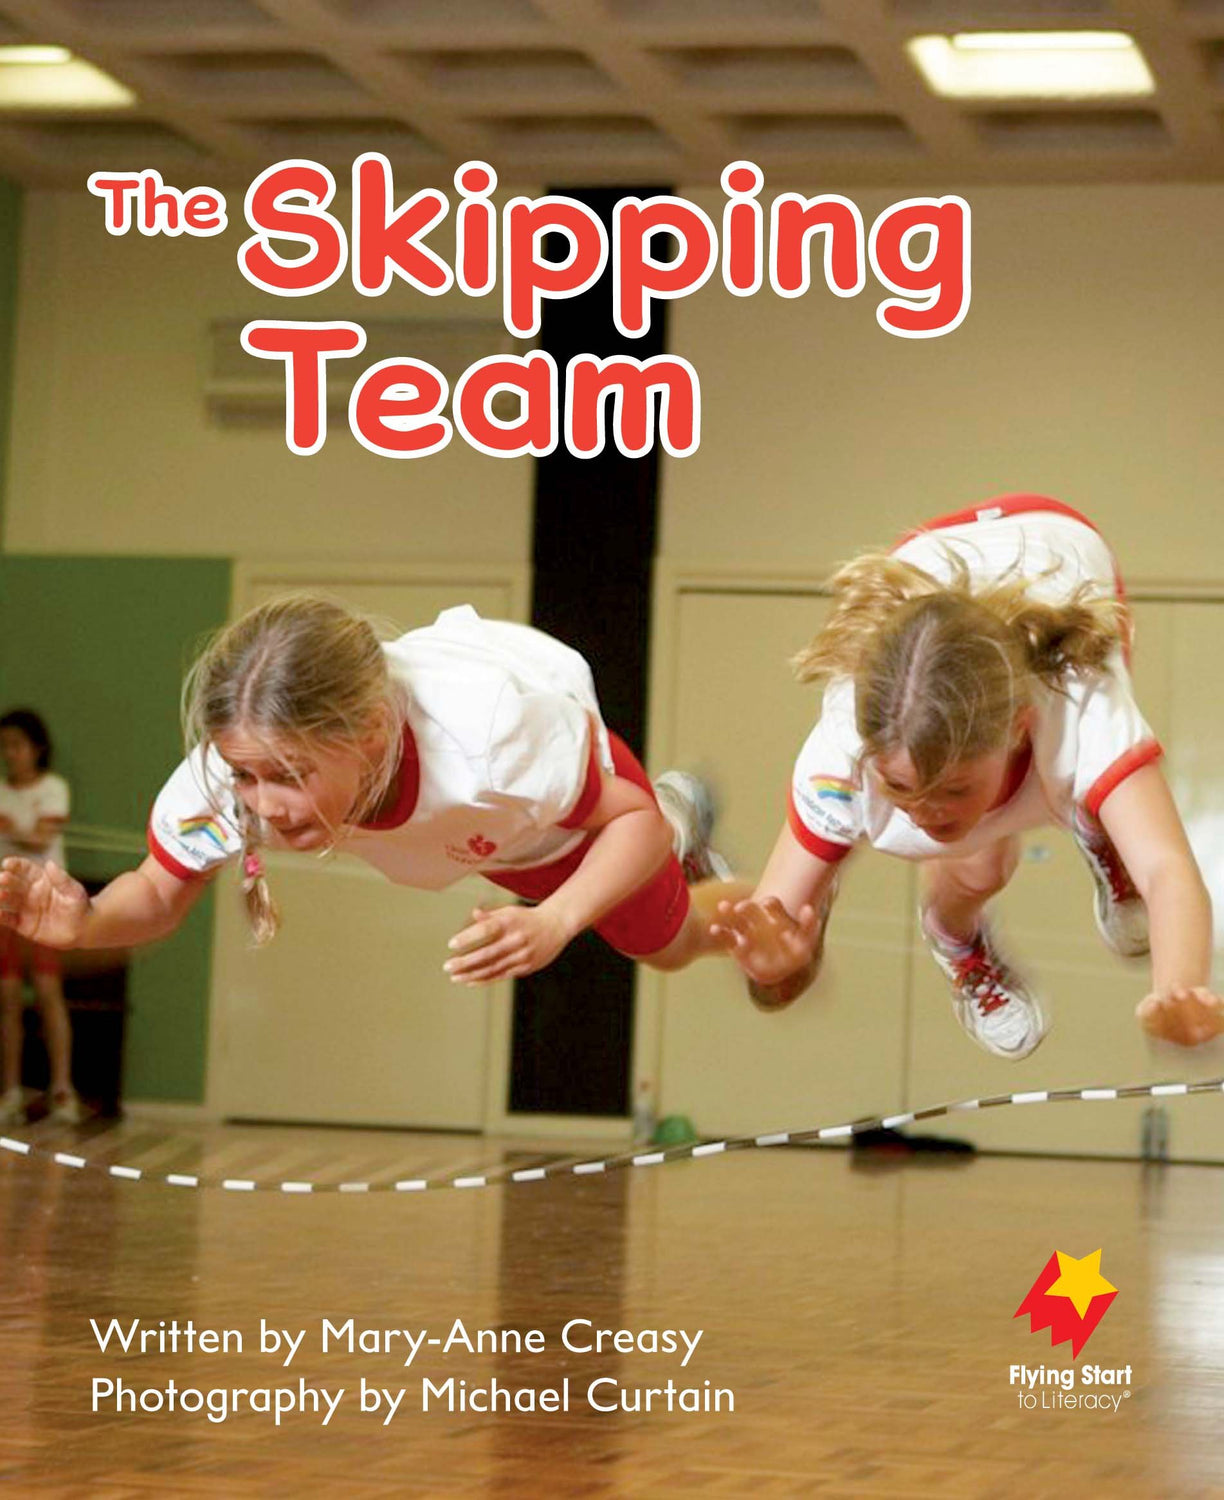 The Skipping Team